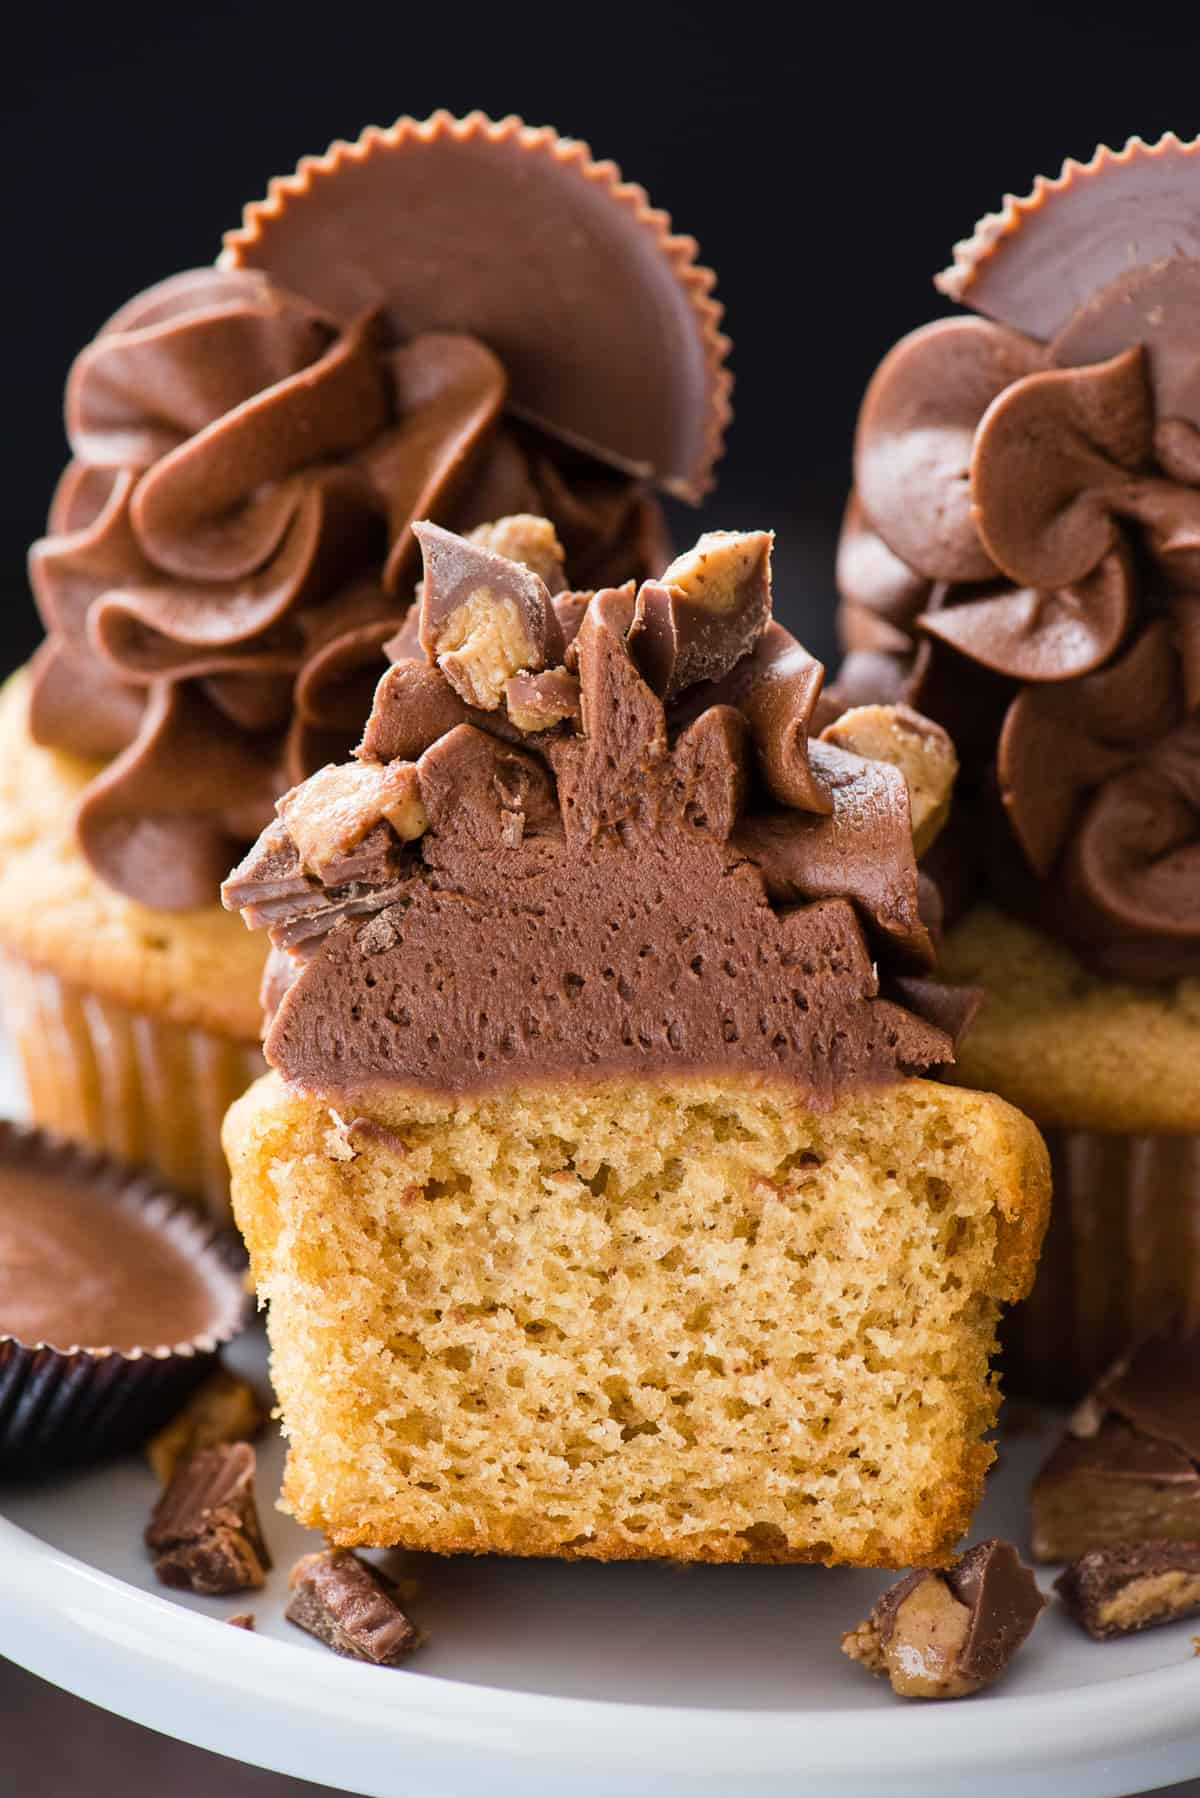 reese's cupcake cut in half to show inside of the cupcake